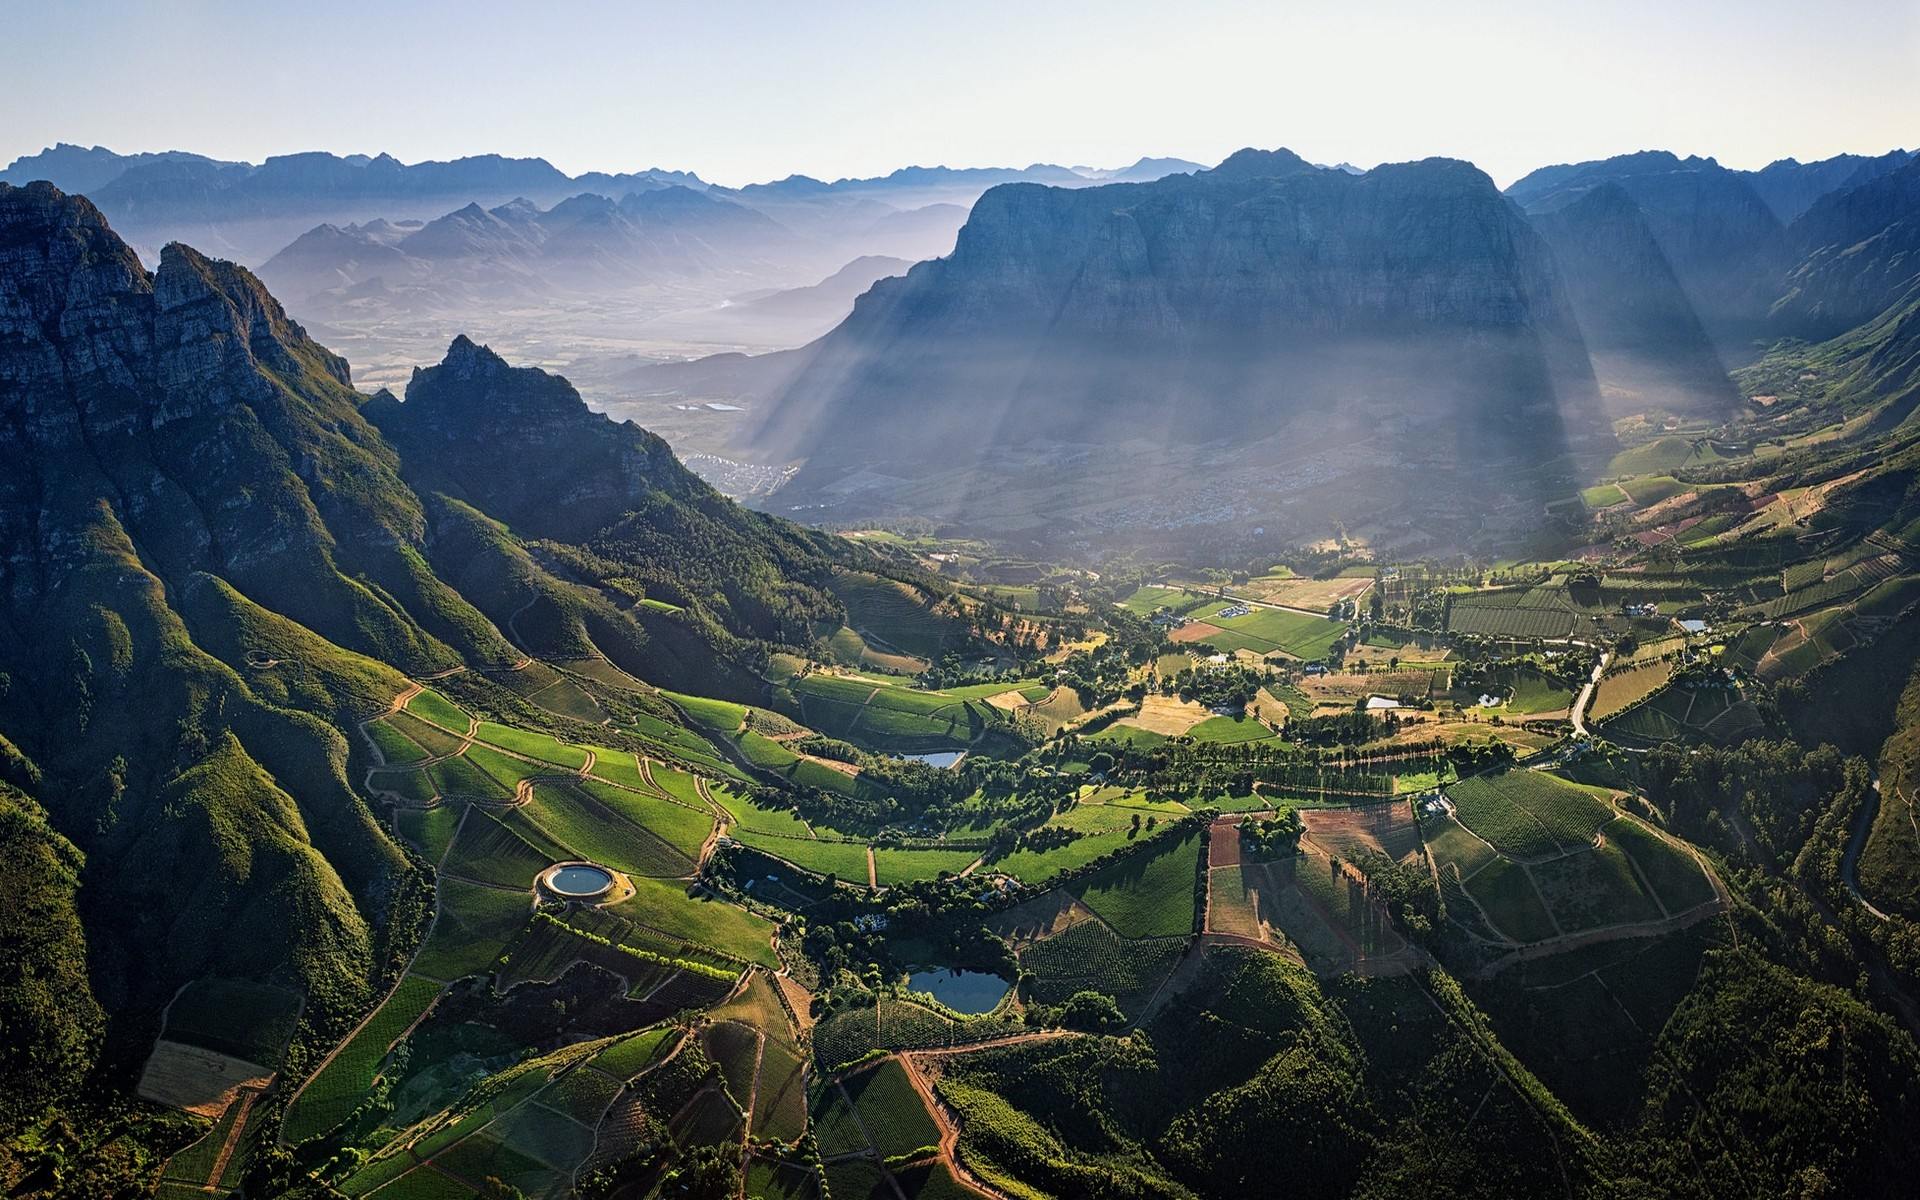 General 1920x1200 photography nature landscape aerial view mountain pass field pond village morning sunlight sun rays mist South Africa